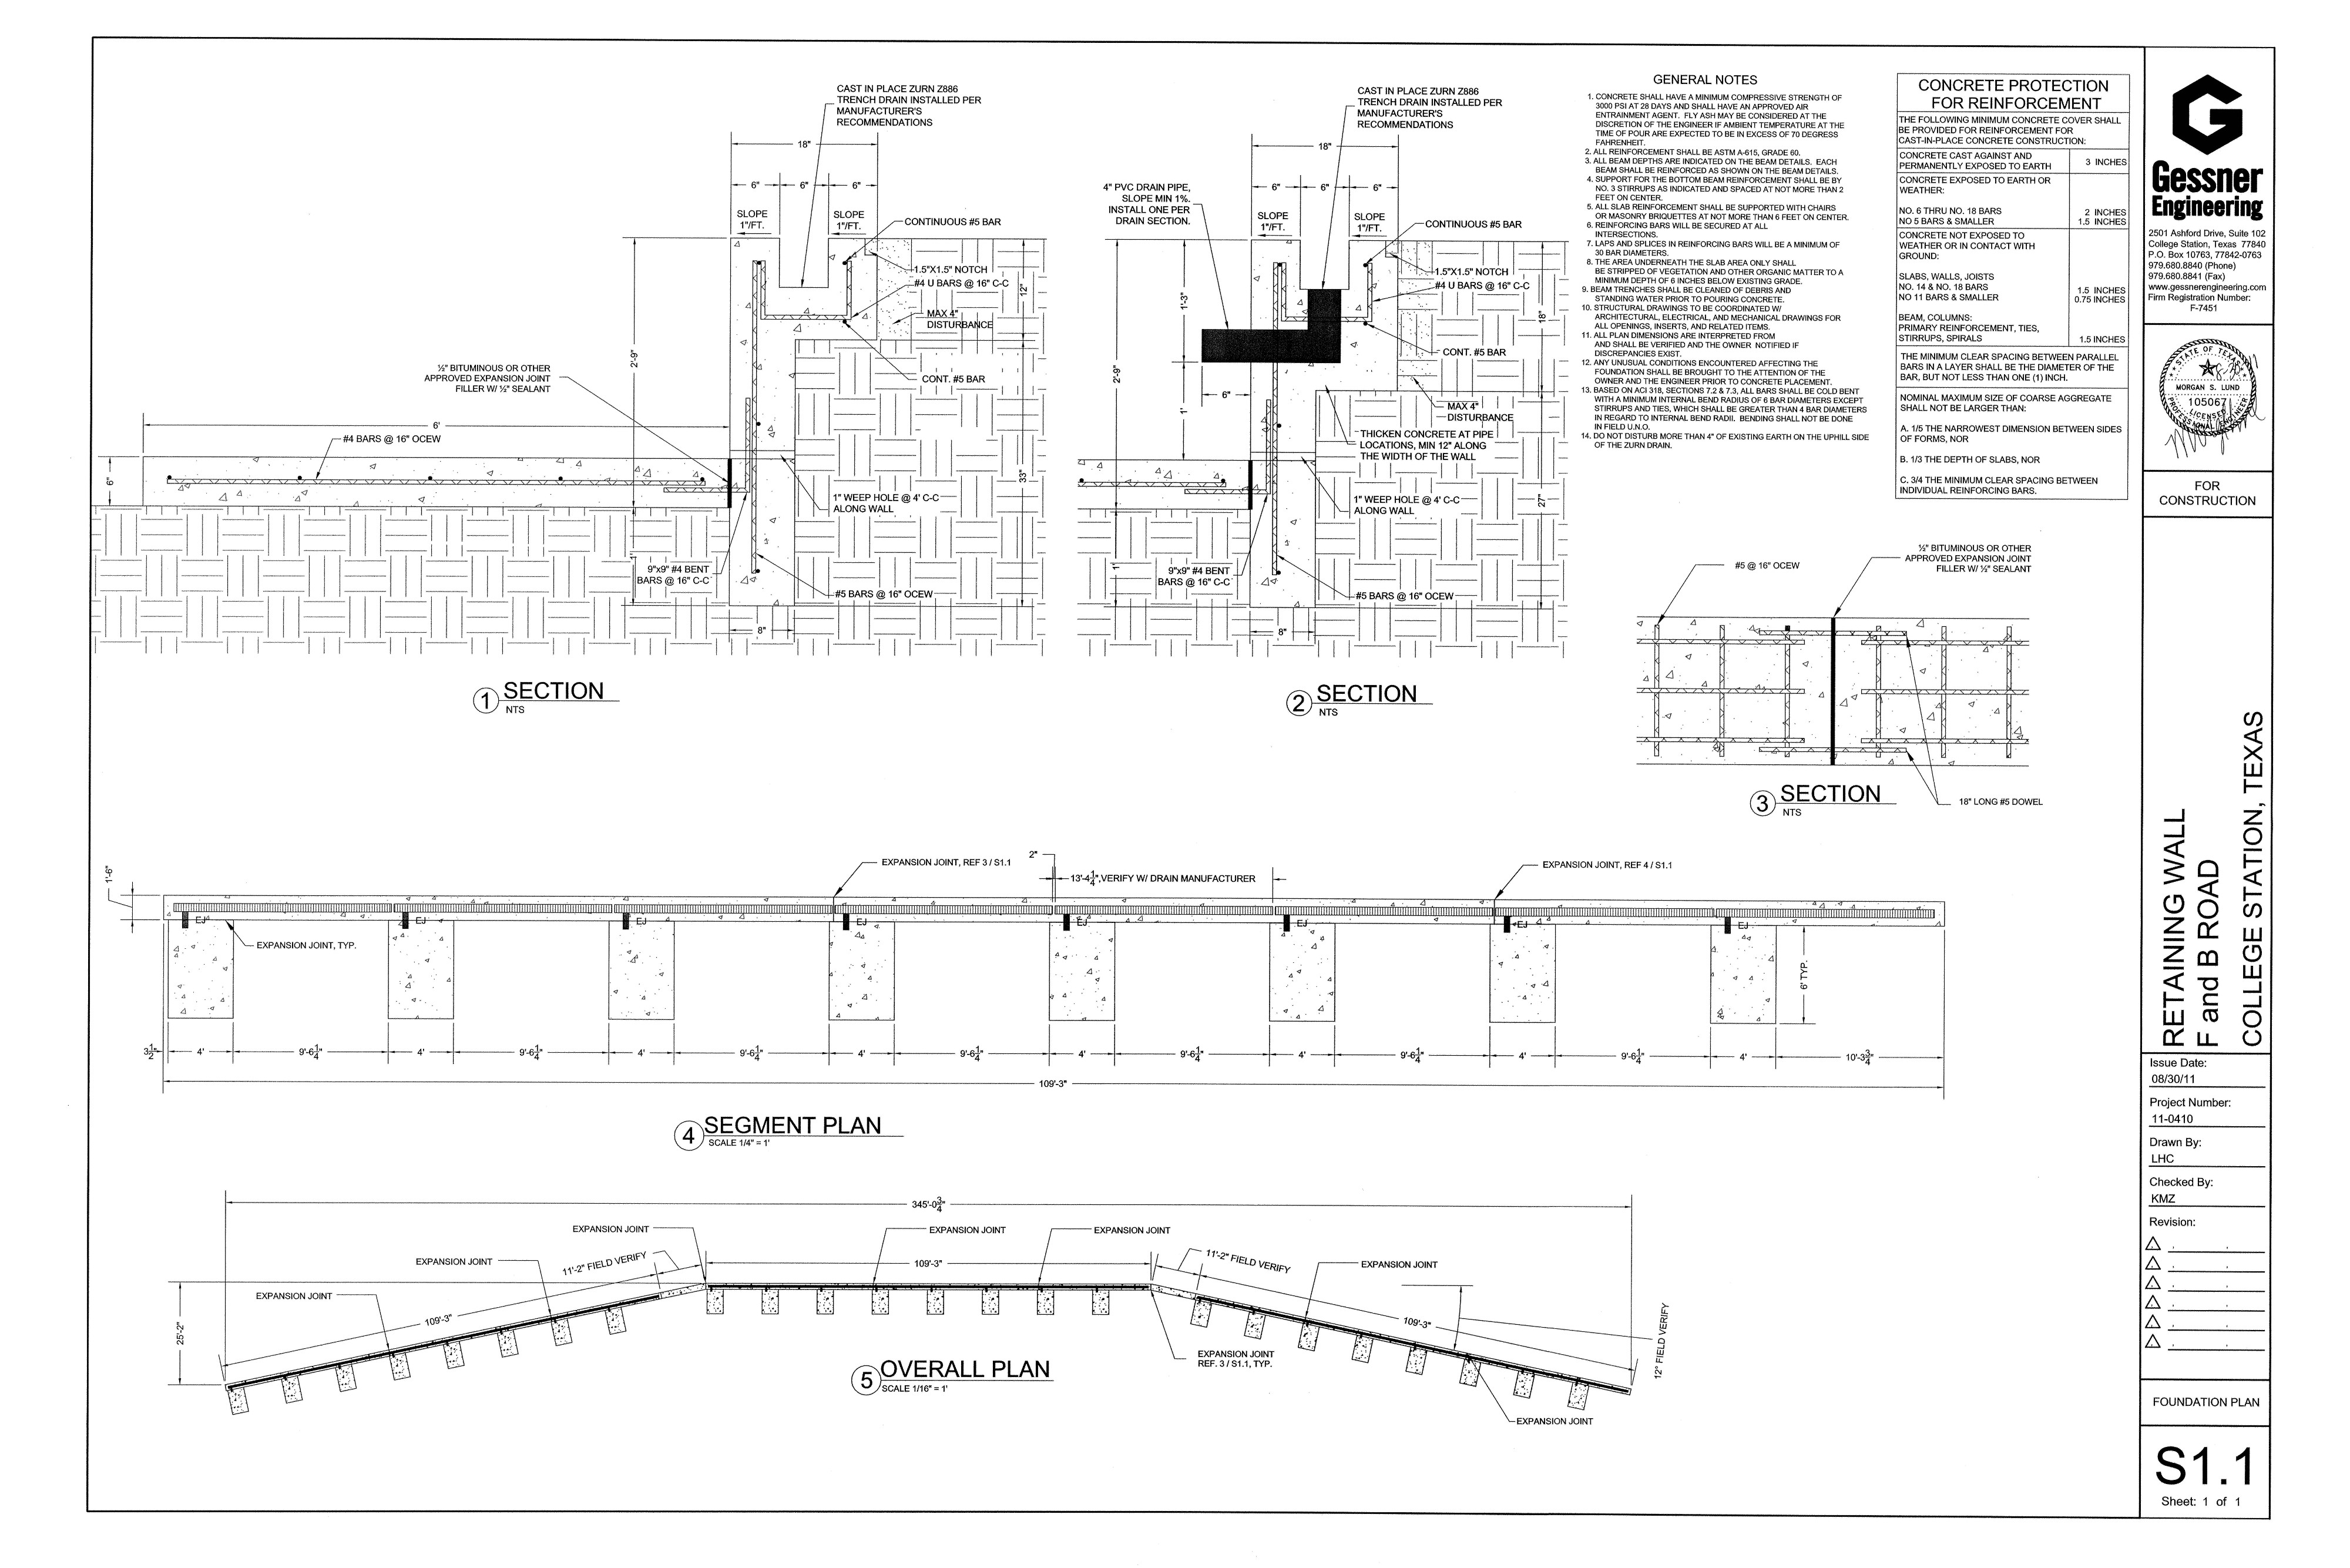 design and construction of an urban runoff research facility protocol Lab Protective Gear figure 2